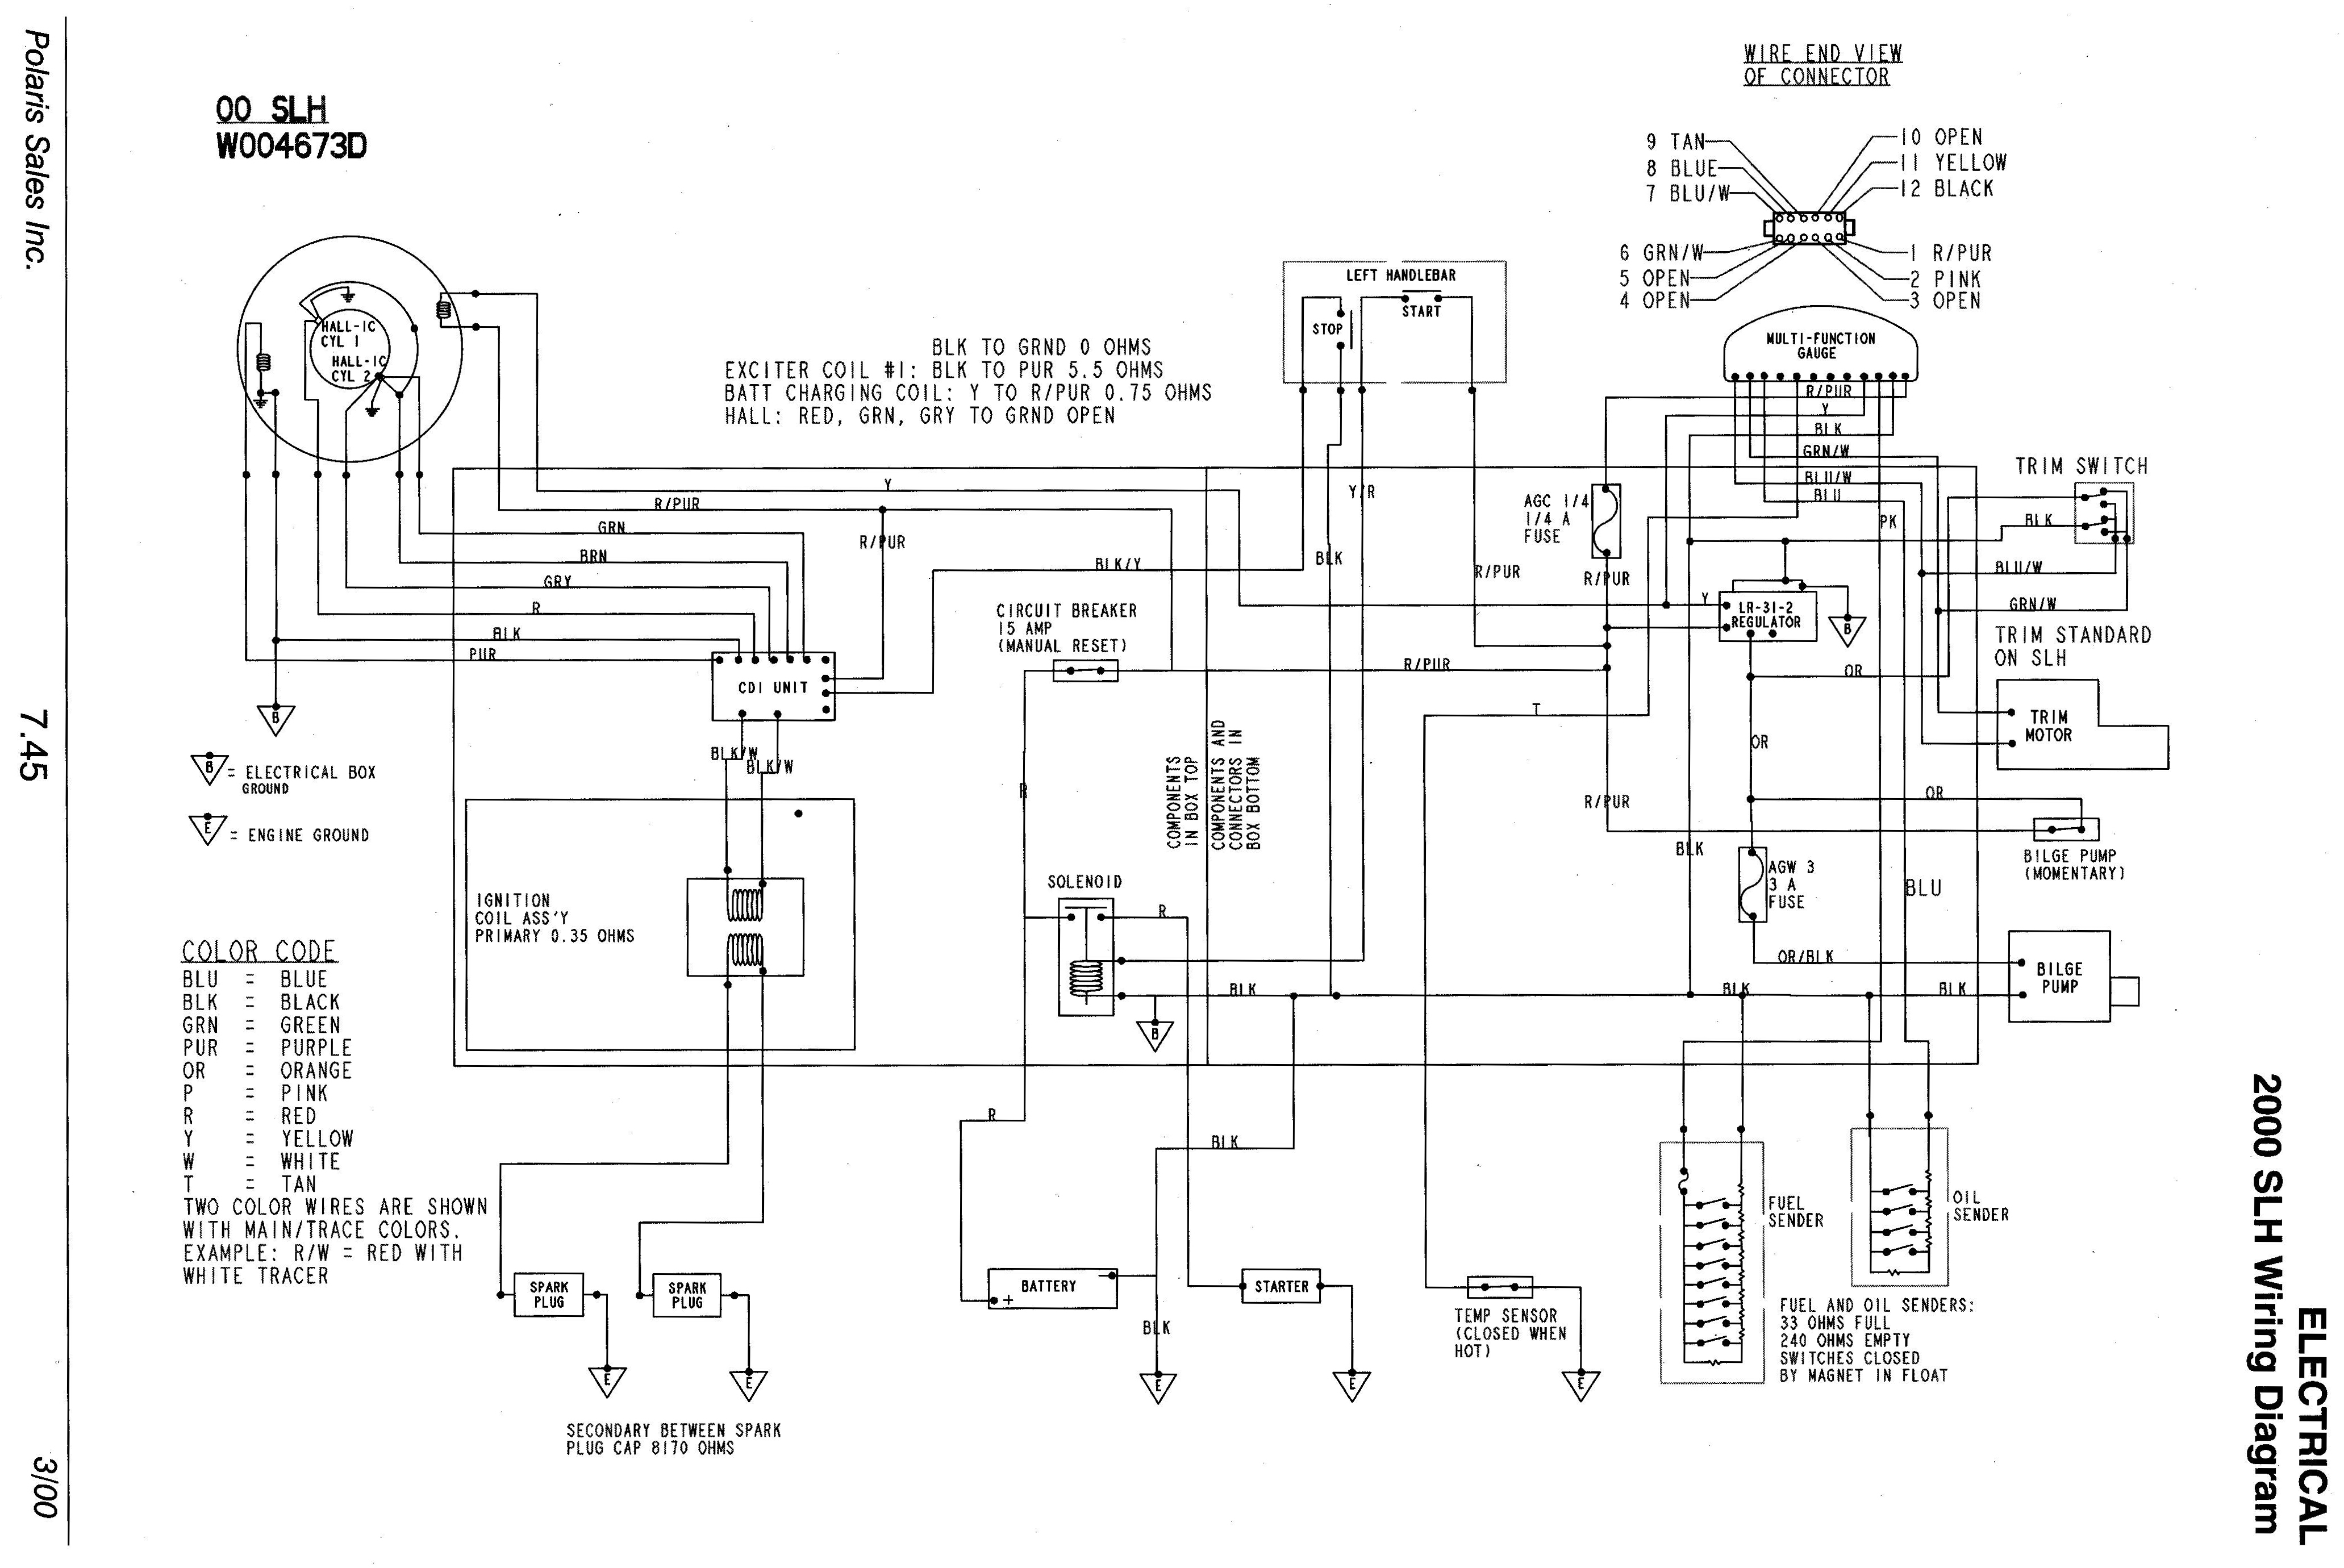 Stunning Sea Doo Wiring Schematic Pictures Inspiration ...